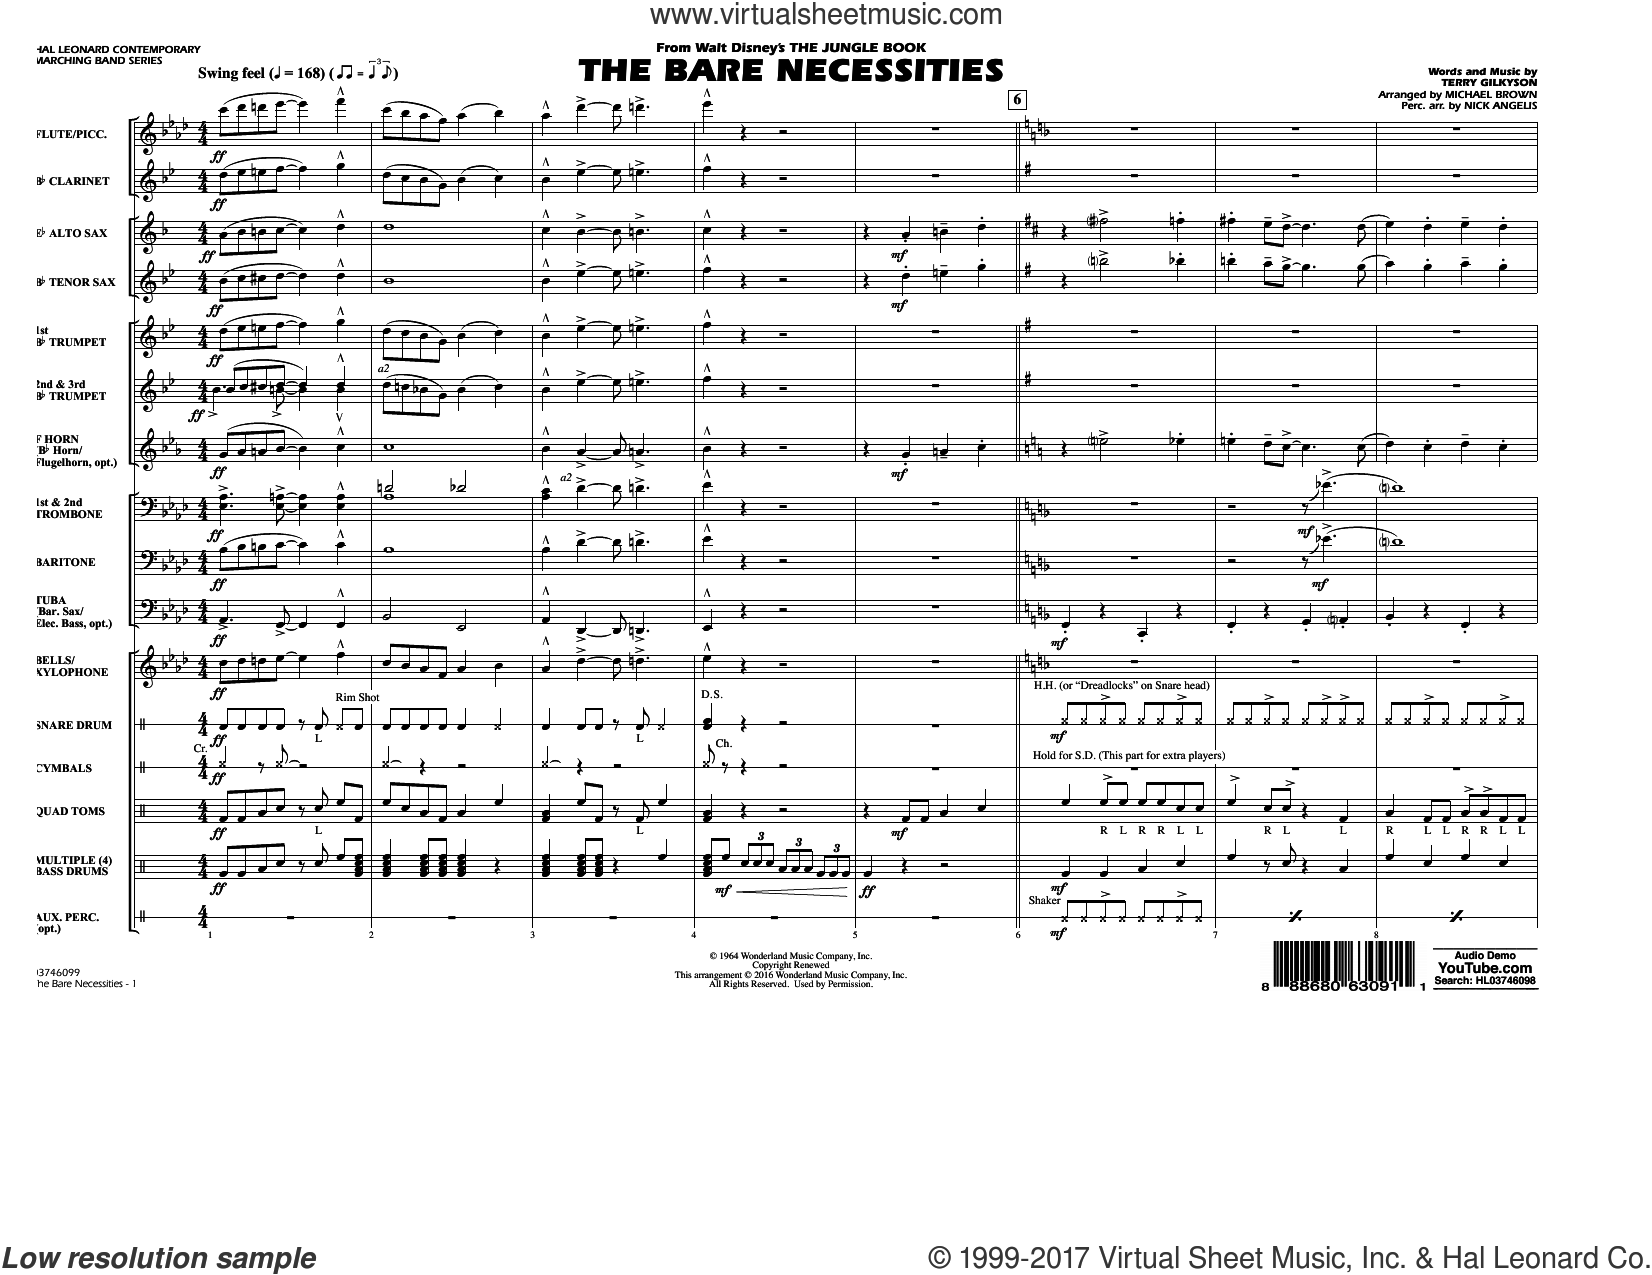 3455daf474a The Bare Necessities (from The Jungle Book) (COMPLETE) sheet music for  marching